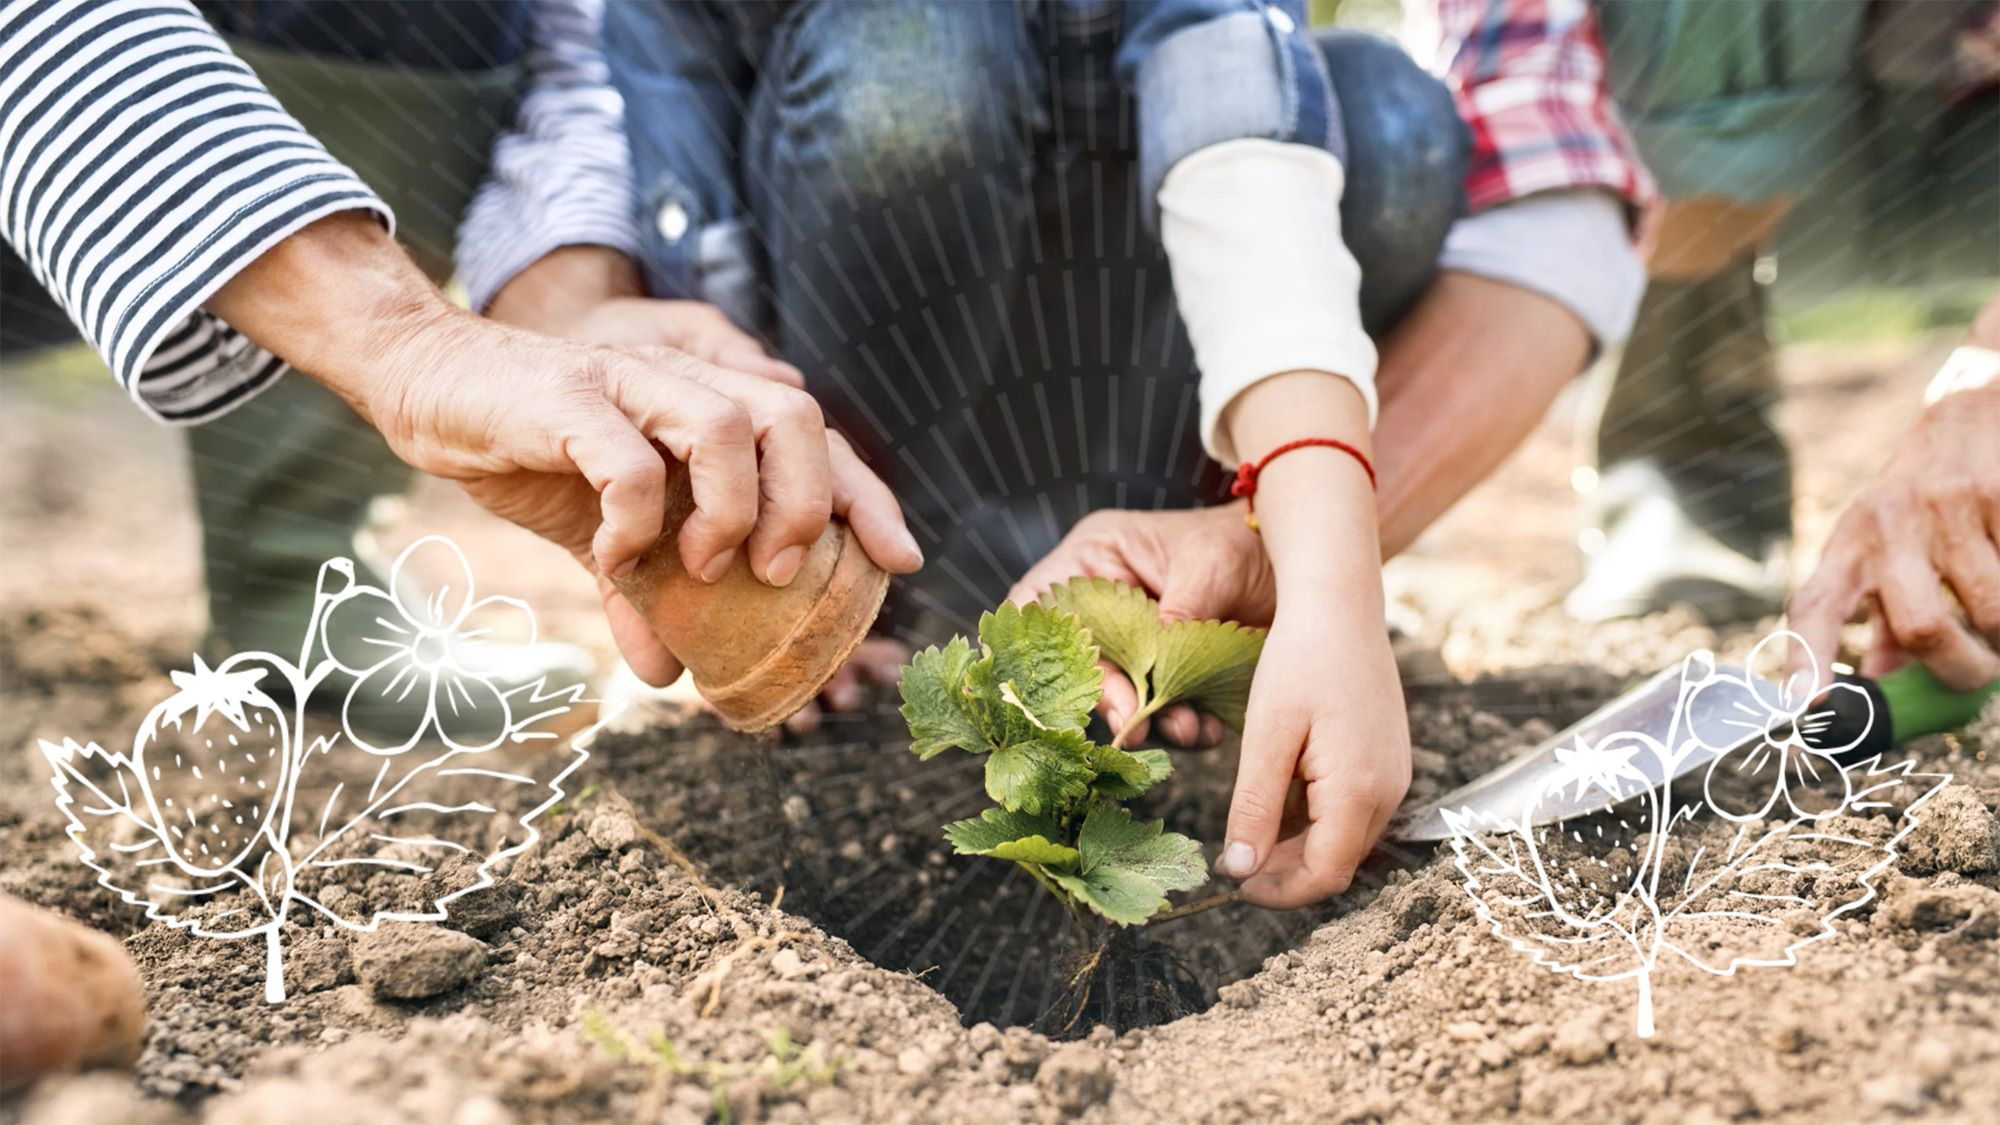 Family planting a plant